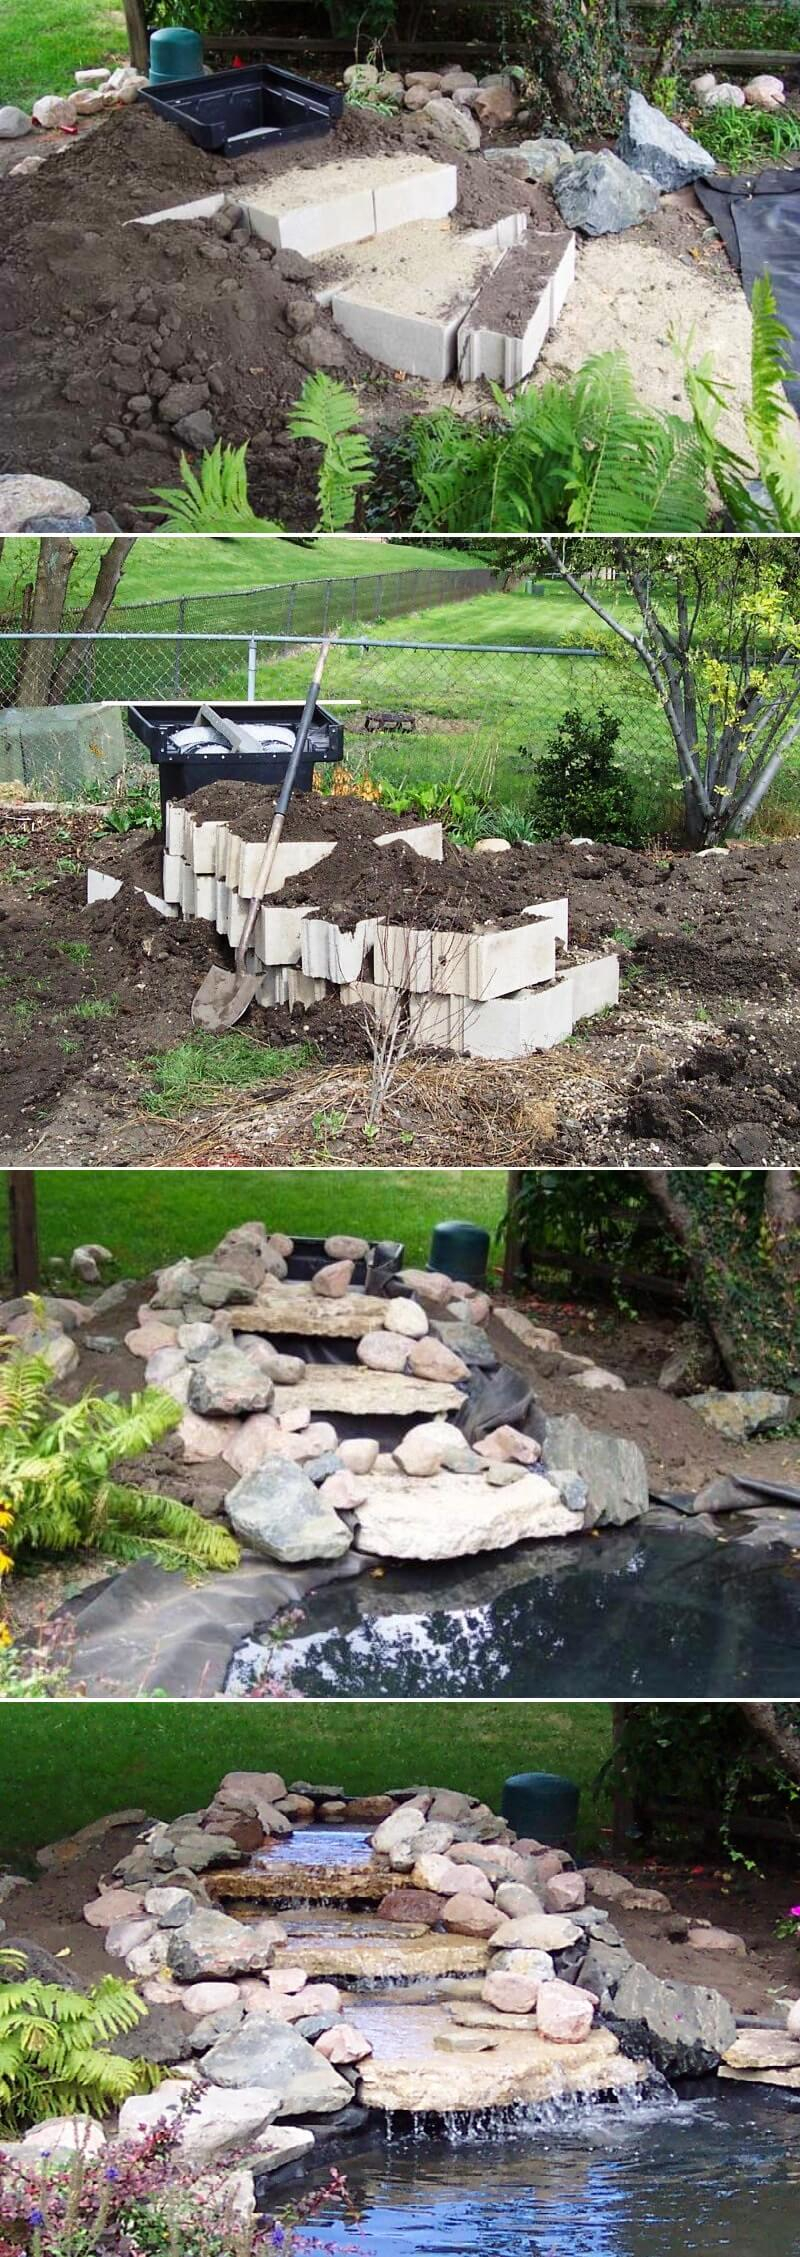 18 Best Diy Backyard Pond Ideas And Designs For 2019 intended for 11 Some of the Coolest Designs of How to Craft Diy Backyard Pond Ideas